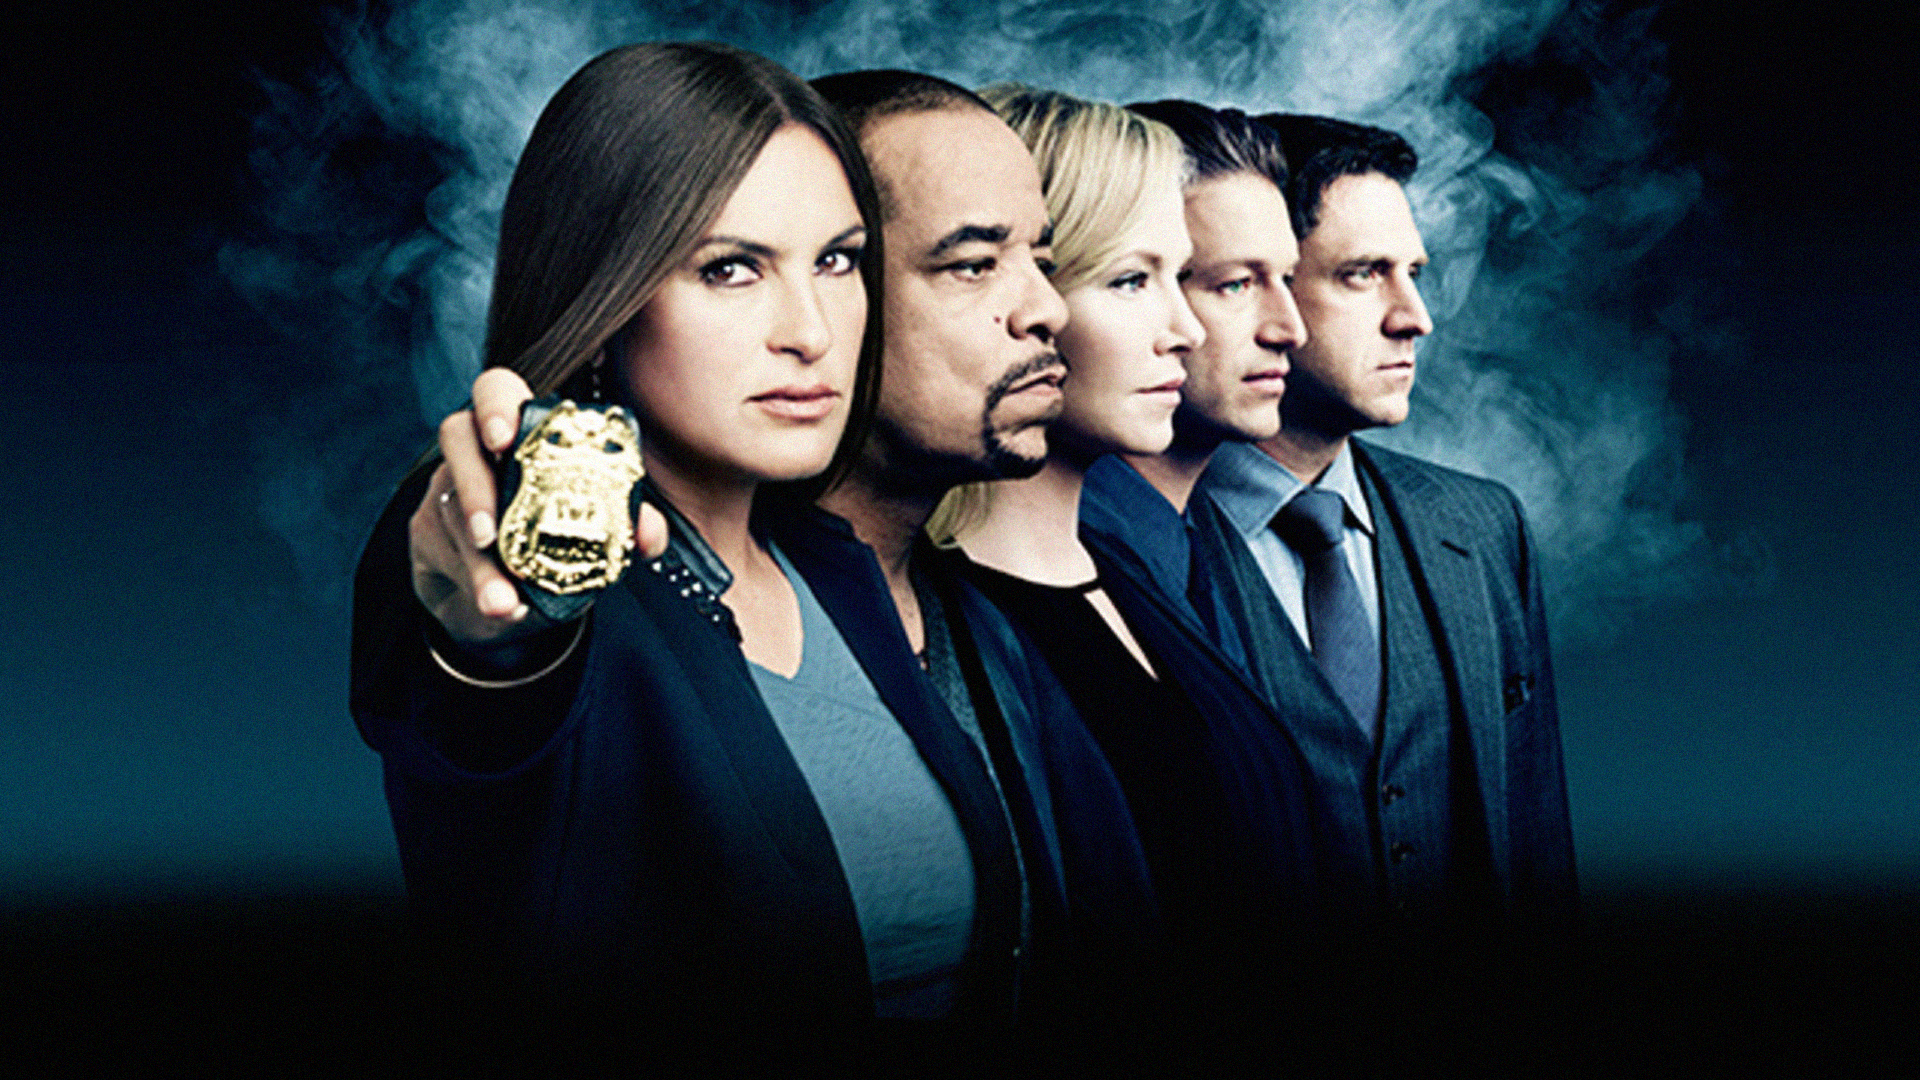 Law and order svu watch tv series